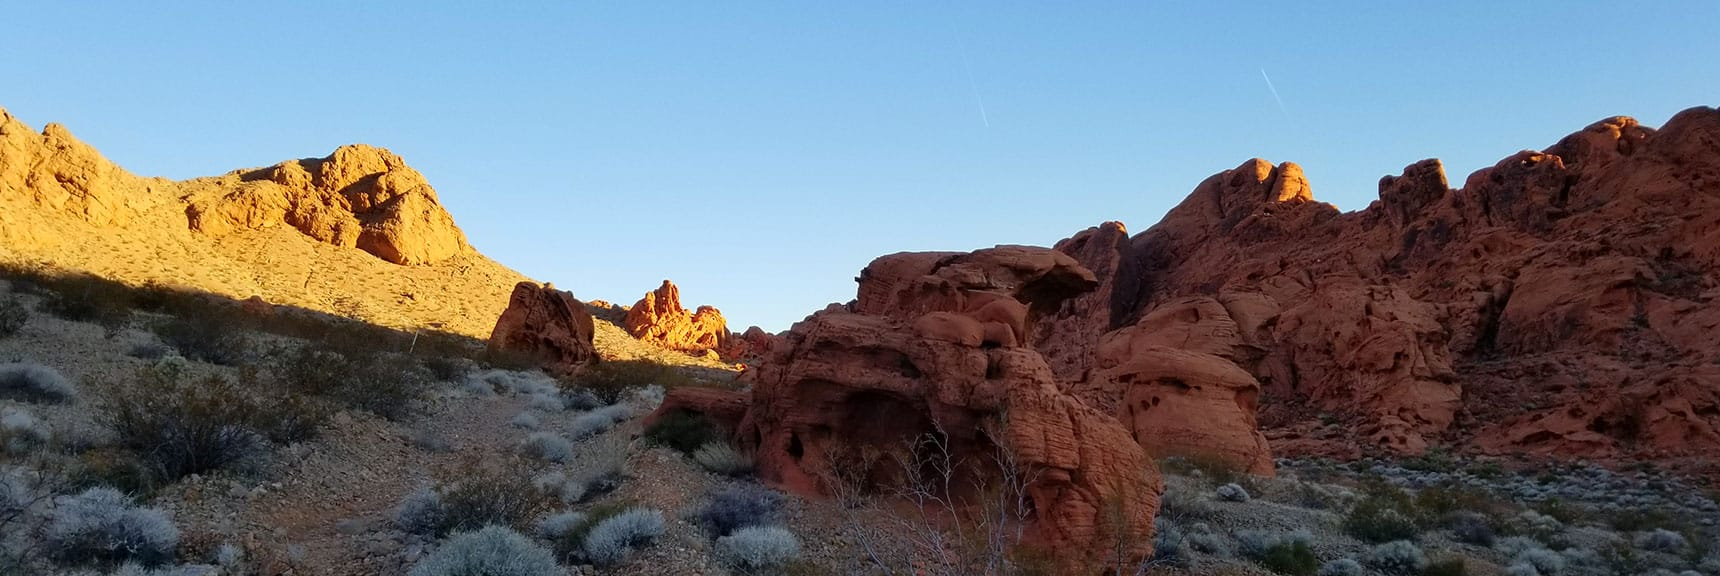 Ascending Through the Pass on Prospect Trail in Valley of Fire State Park, Nevada